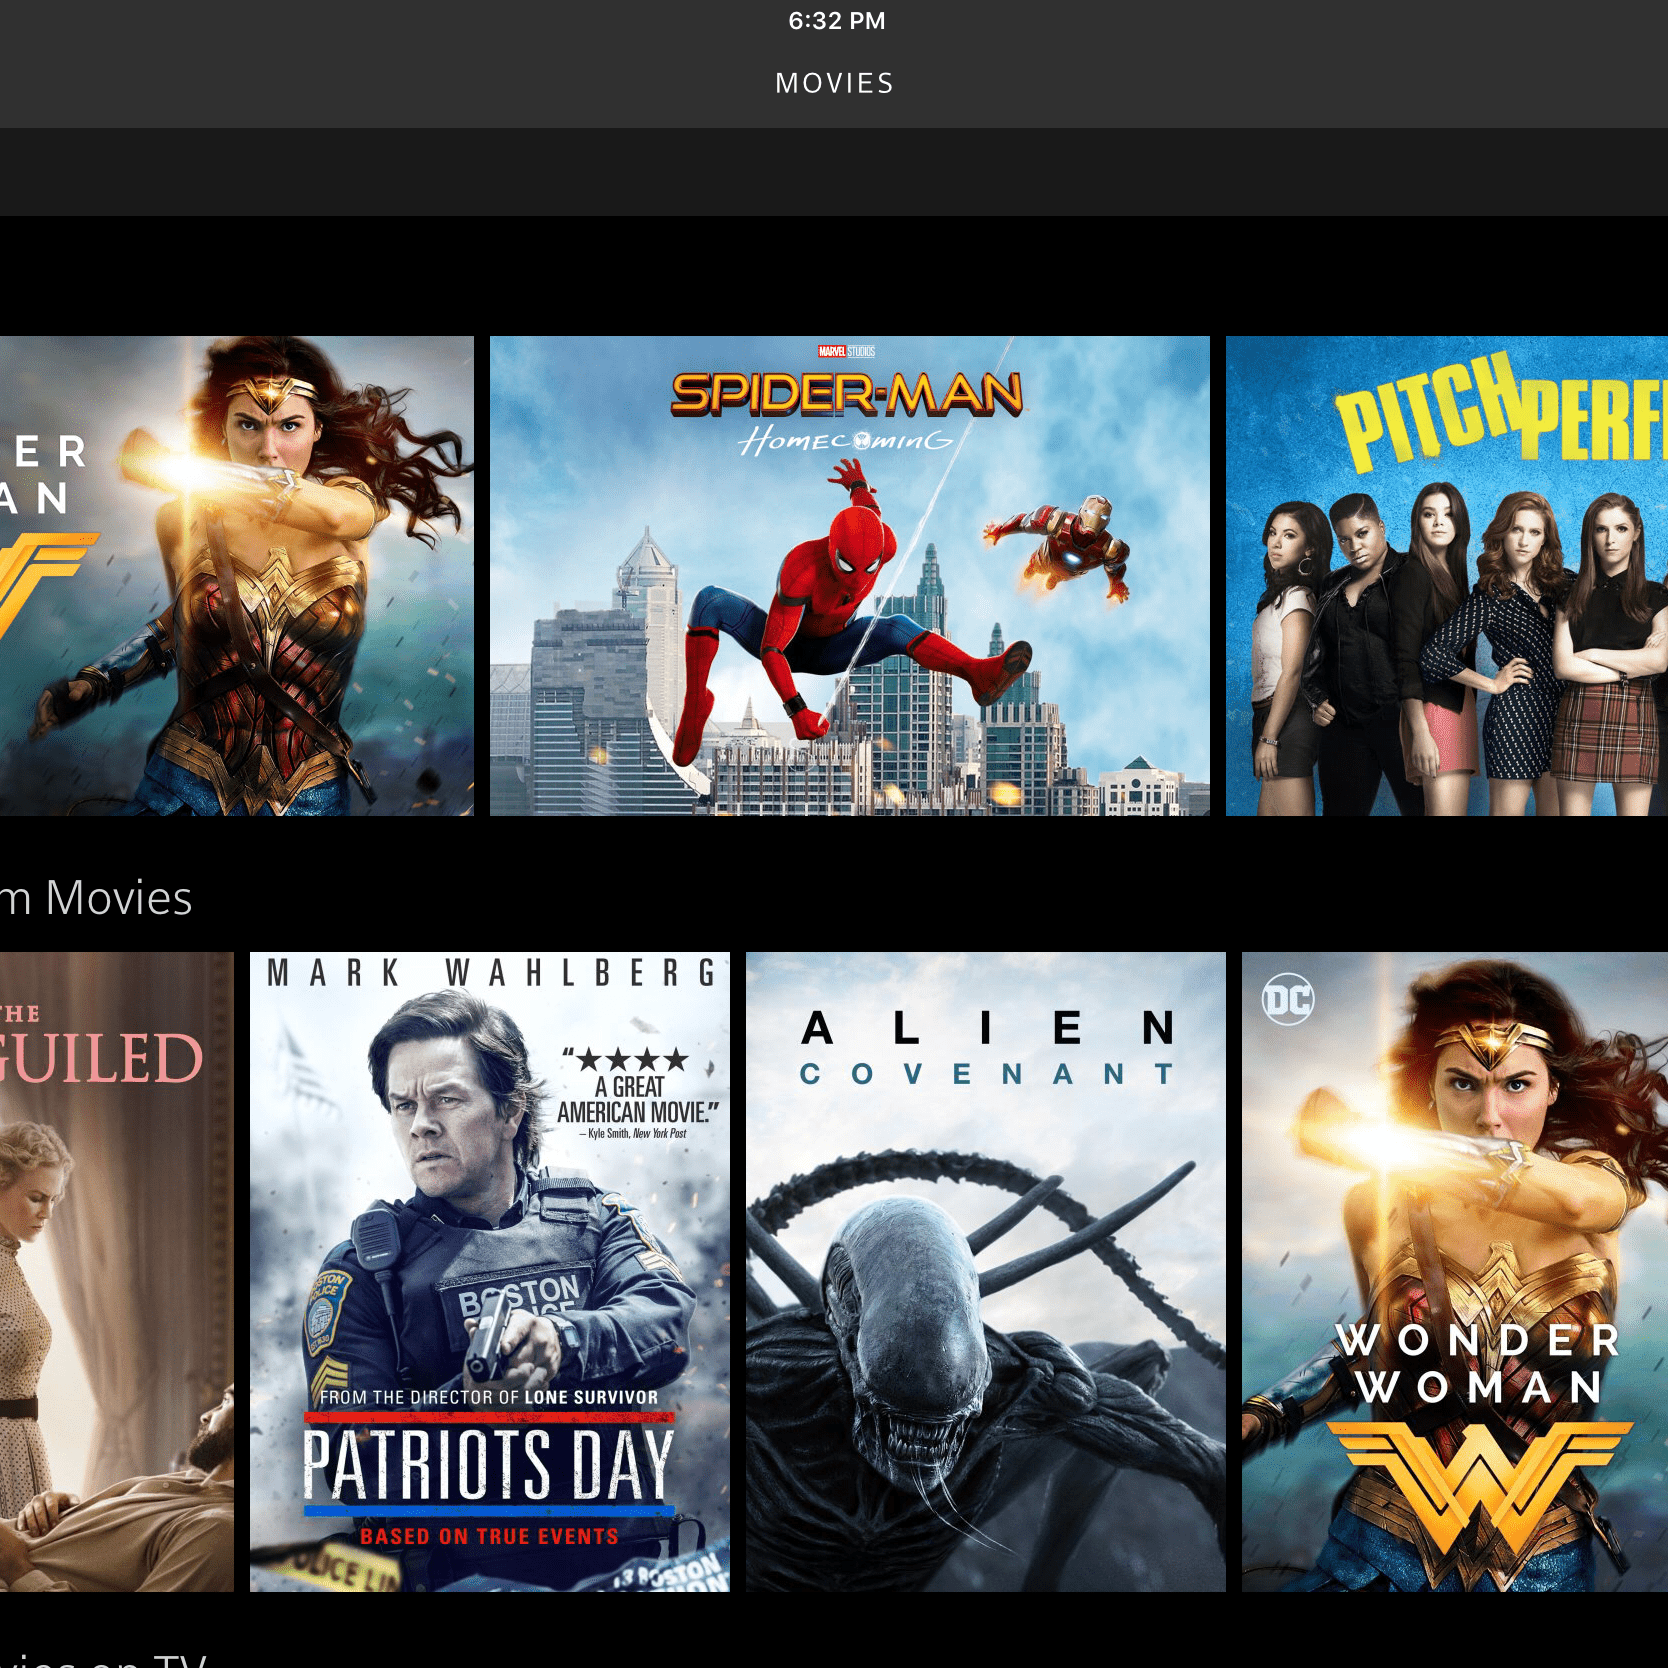 Download and Watch Movies on Your Smartphone or Tablet